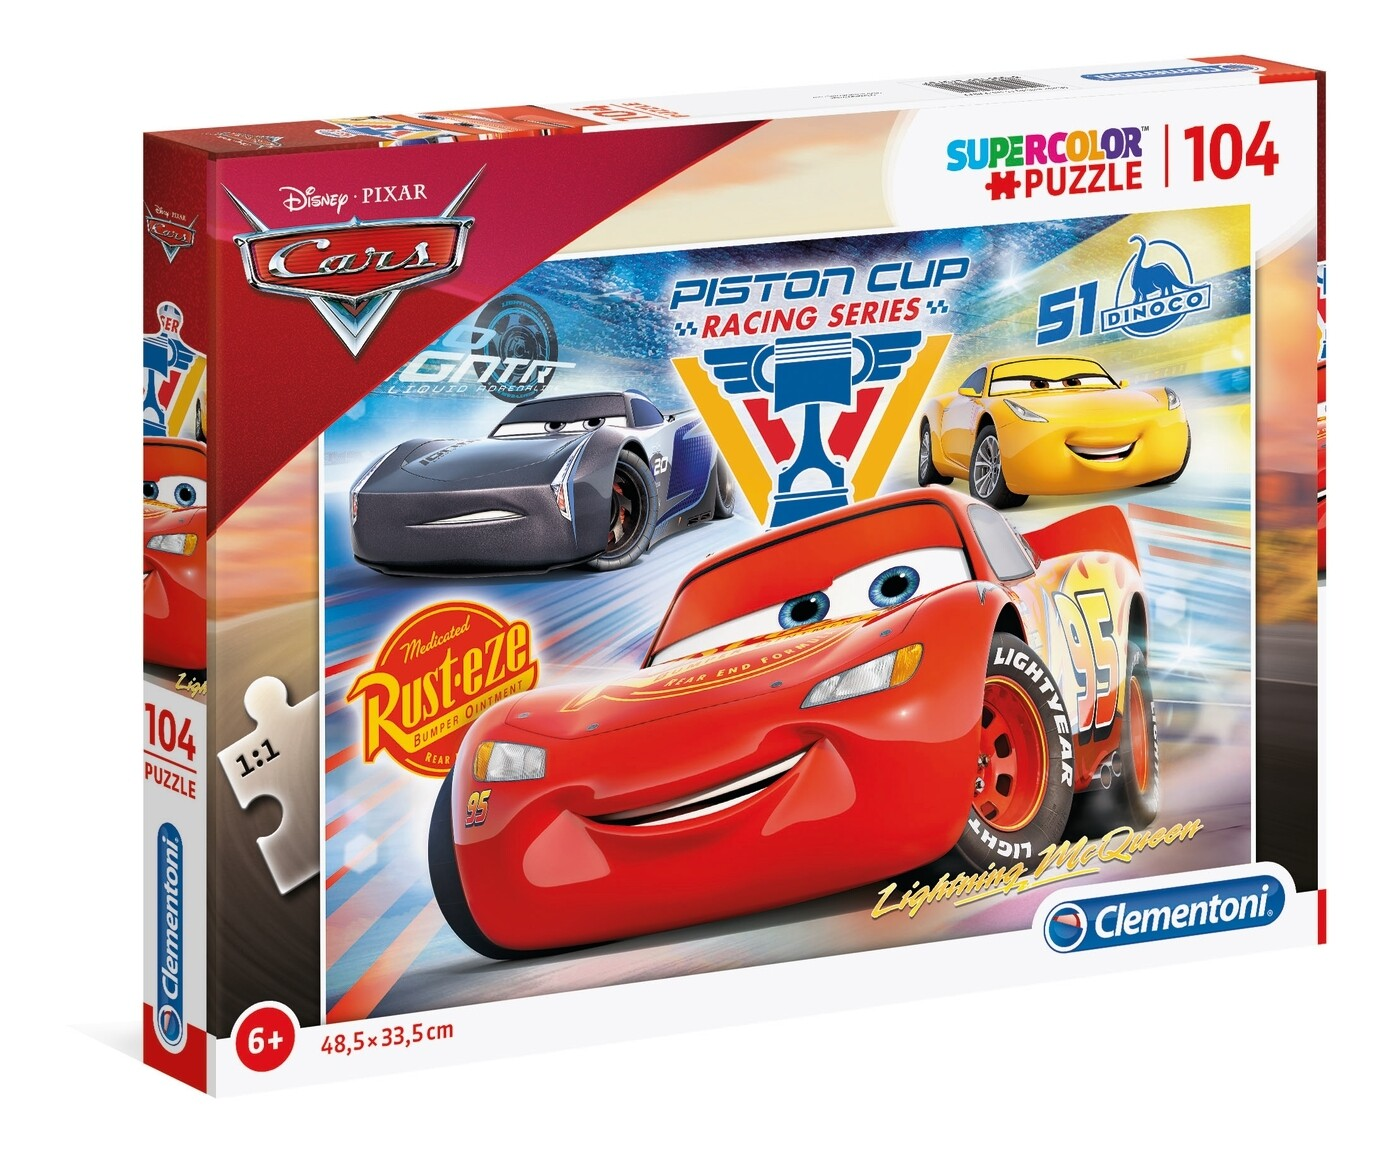 PUZZLE Super 104pcs Cars 3 -- CLEMENTONI